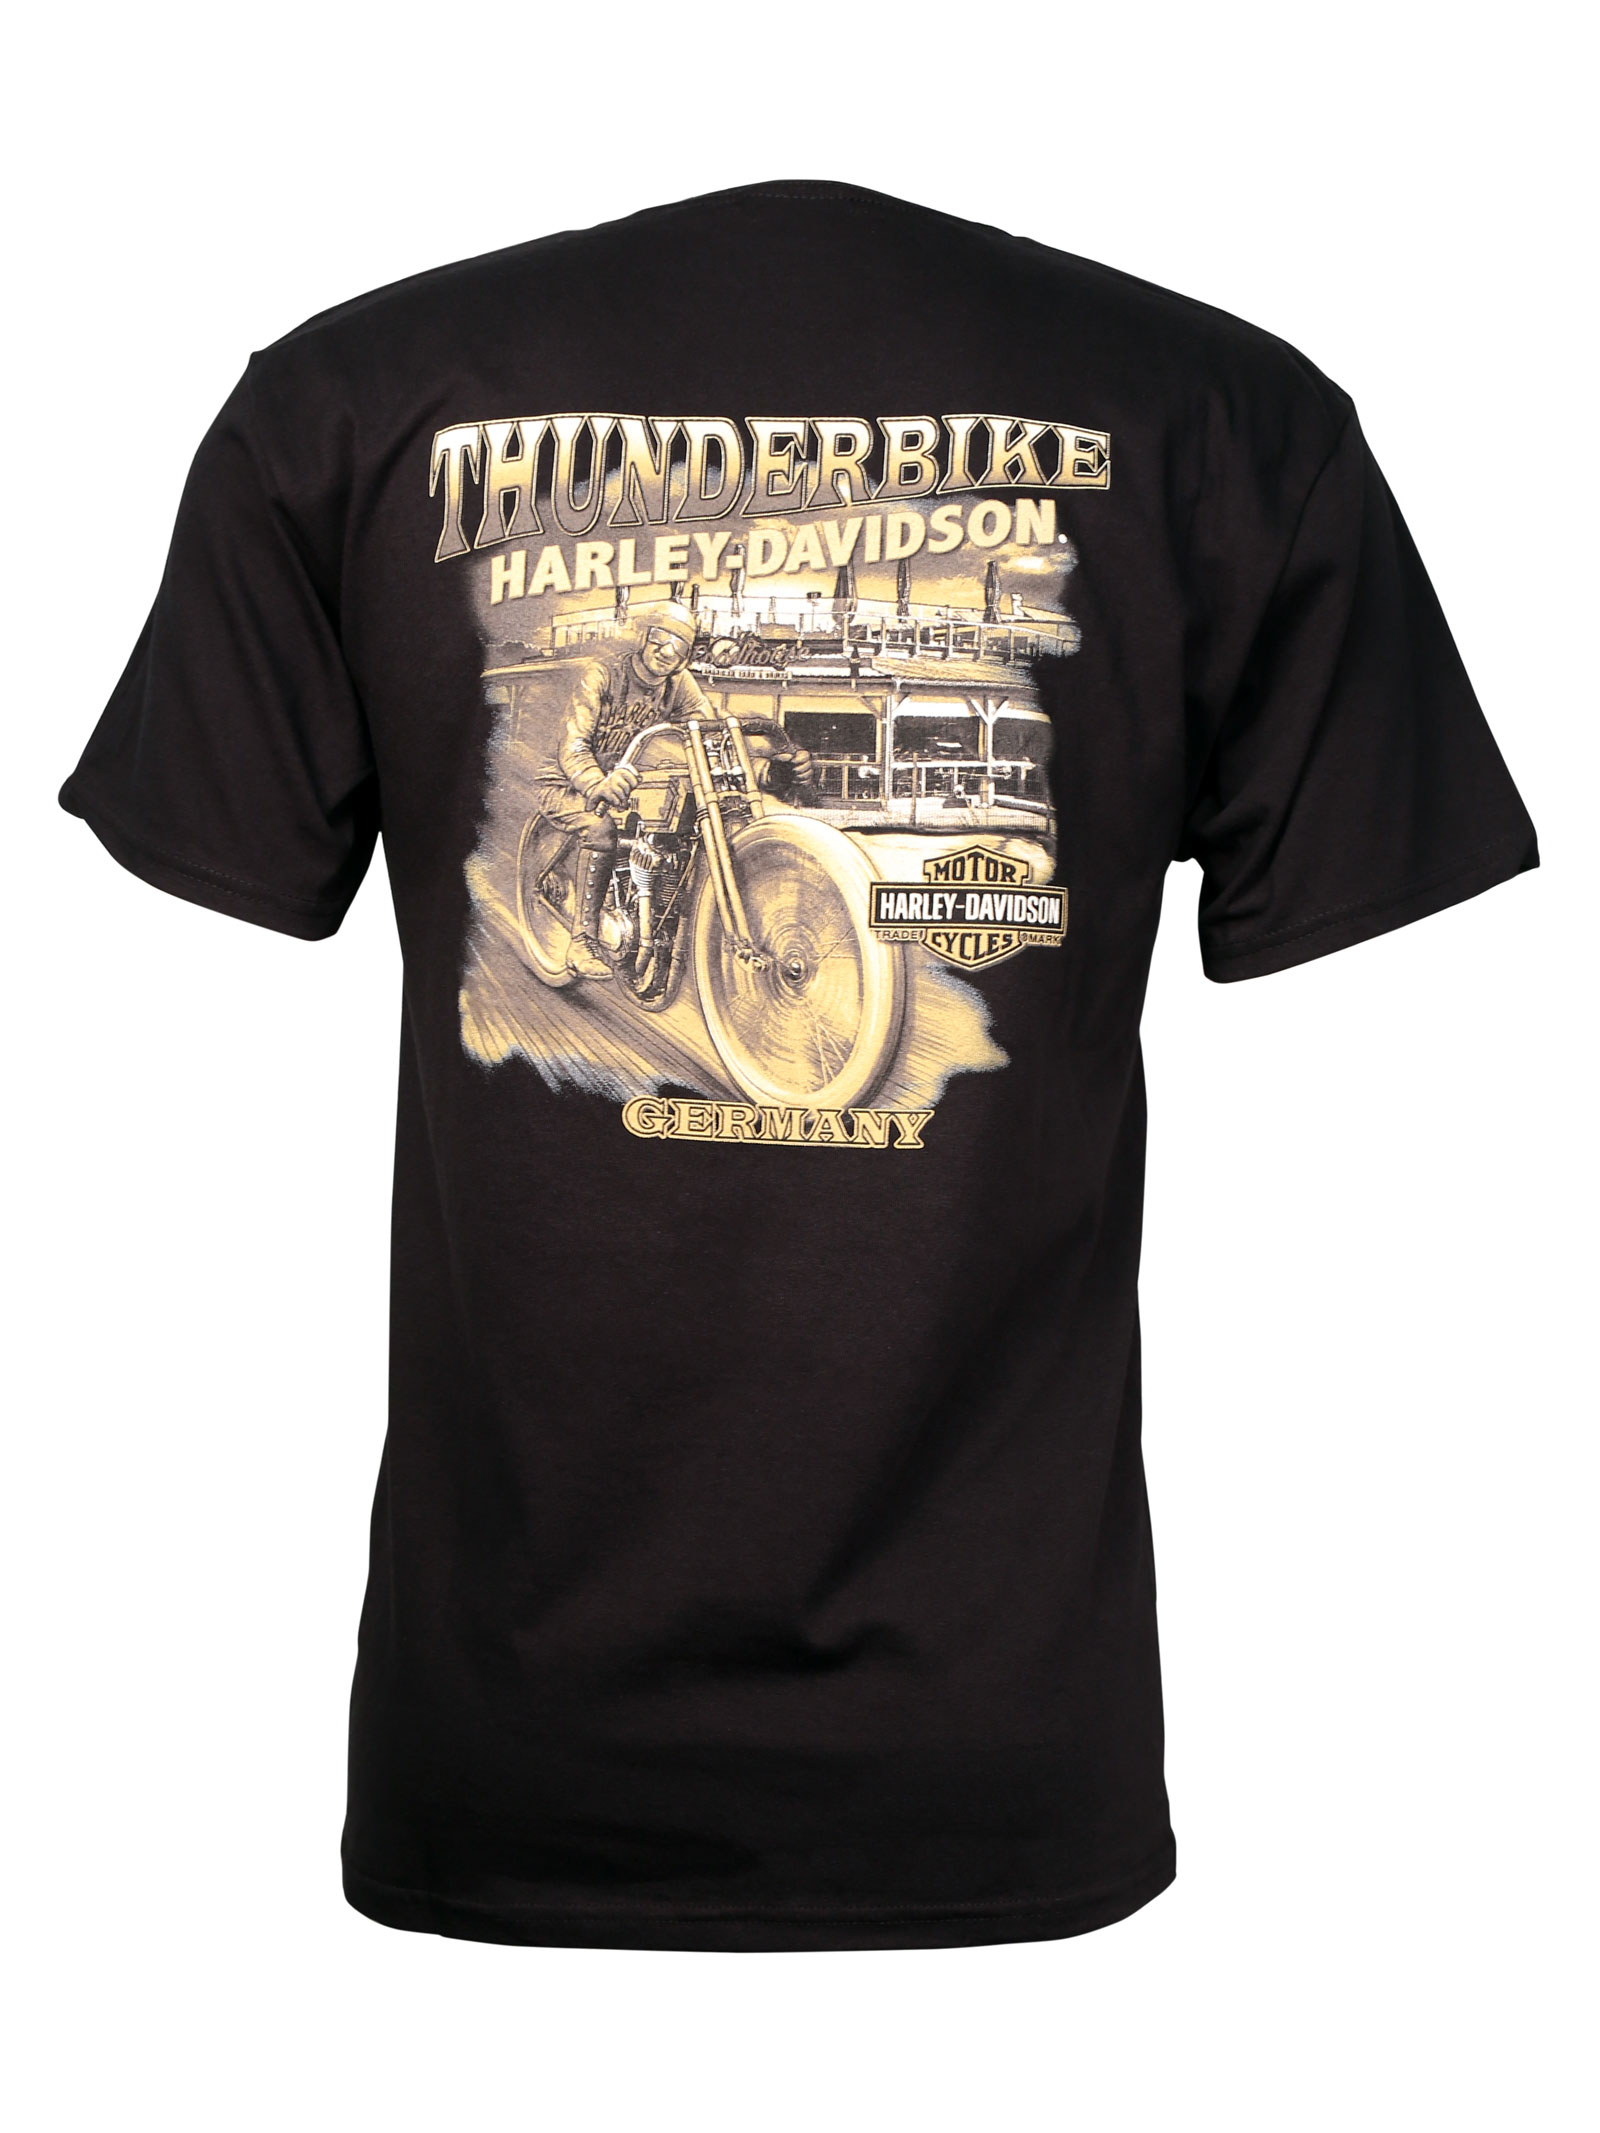 harley davidson t shirt caged power at thunderbike shop. Black Bedroom Furniture Sets. Home Design Ideas